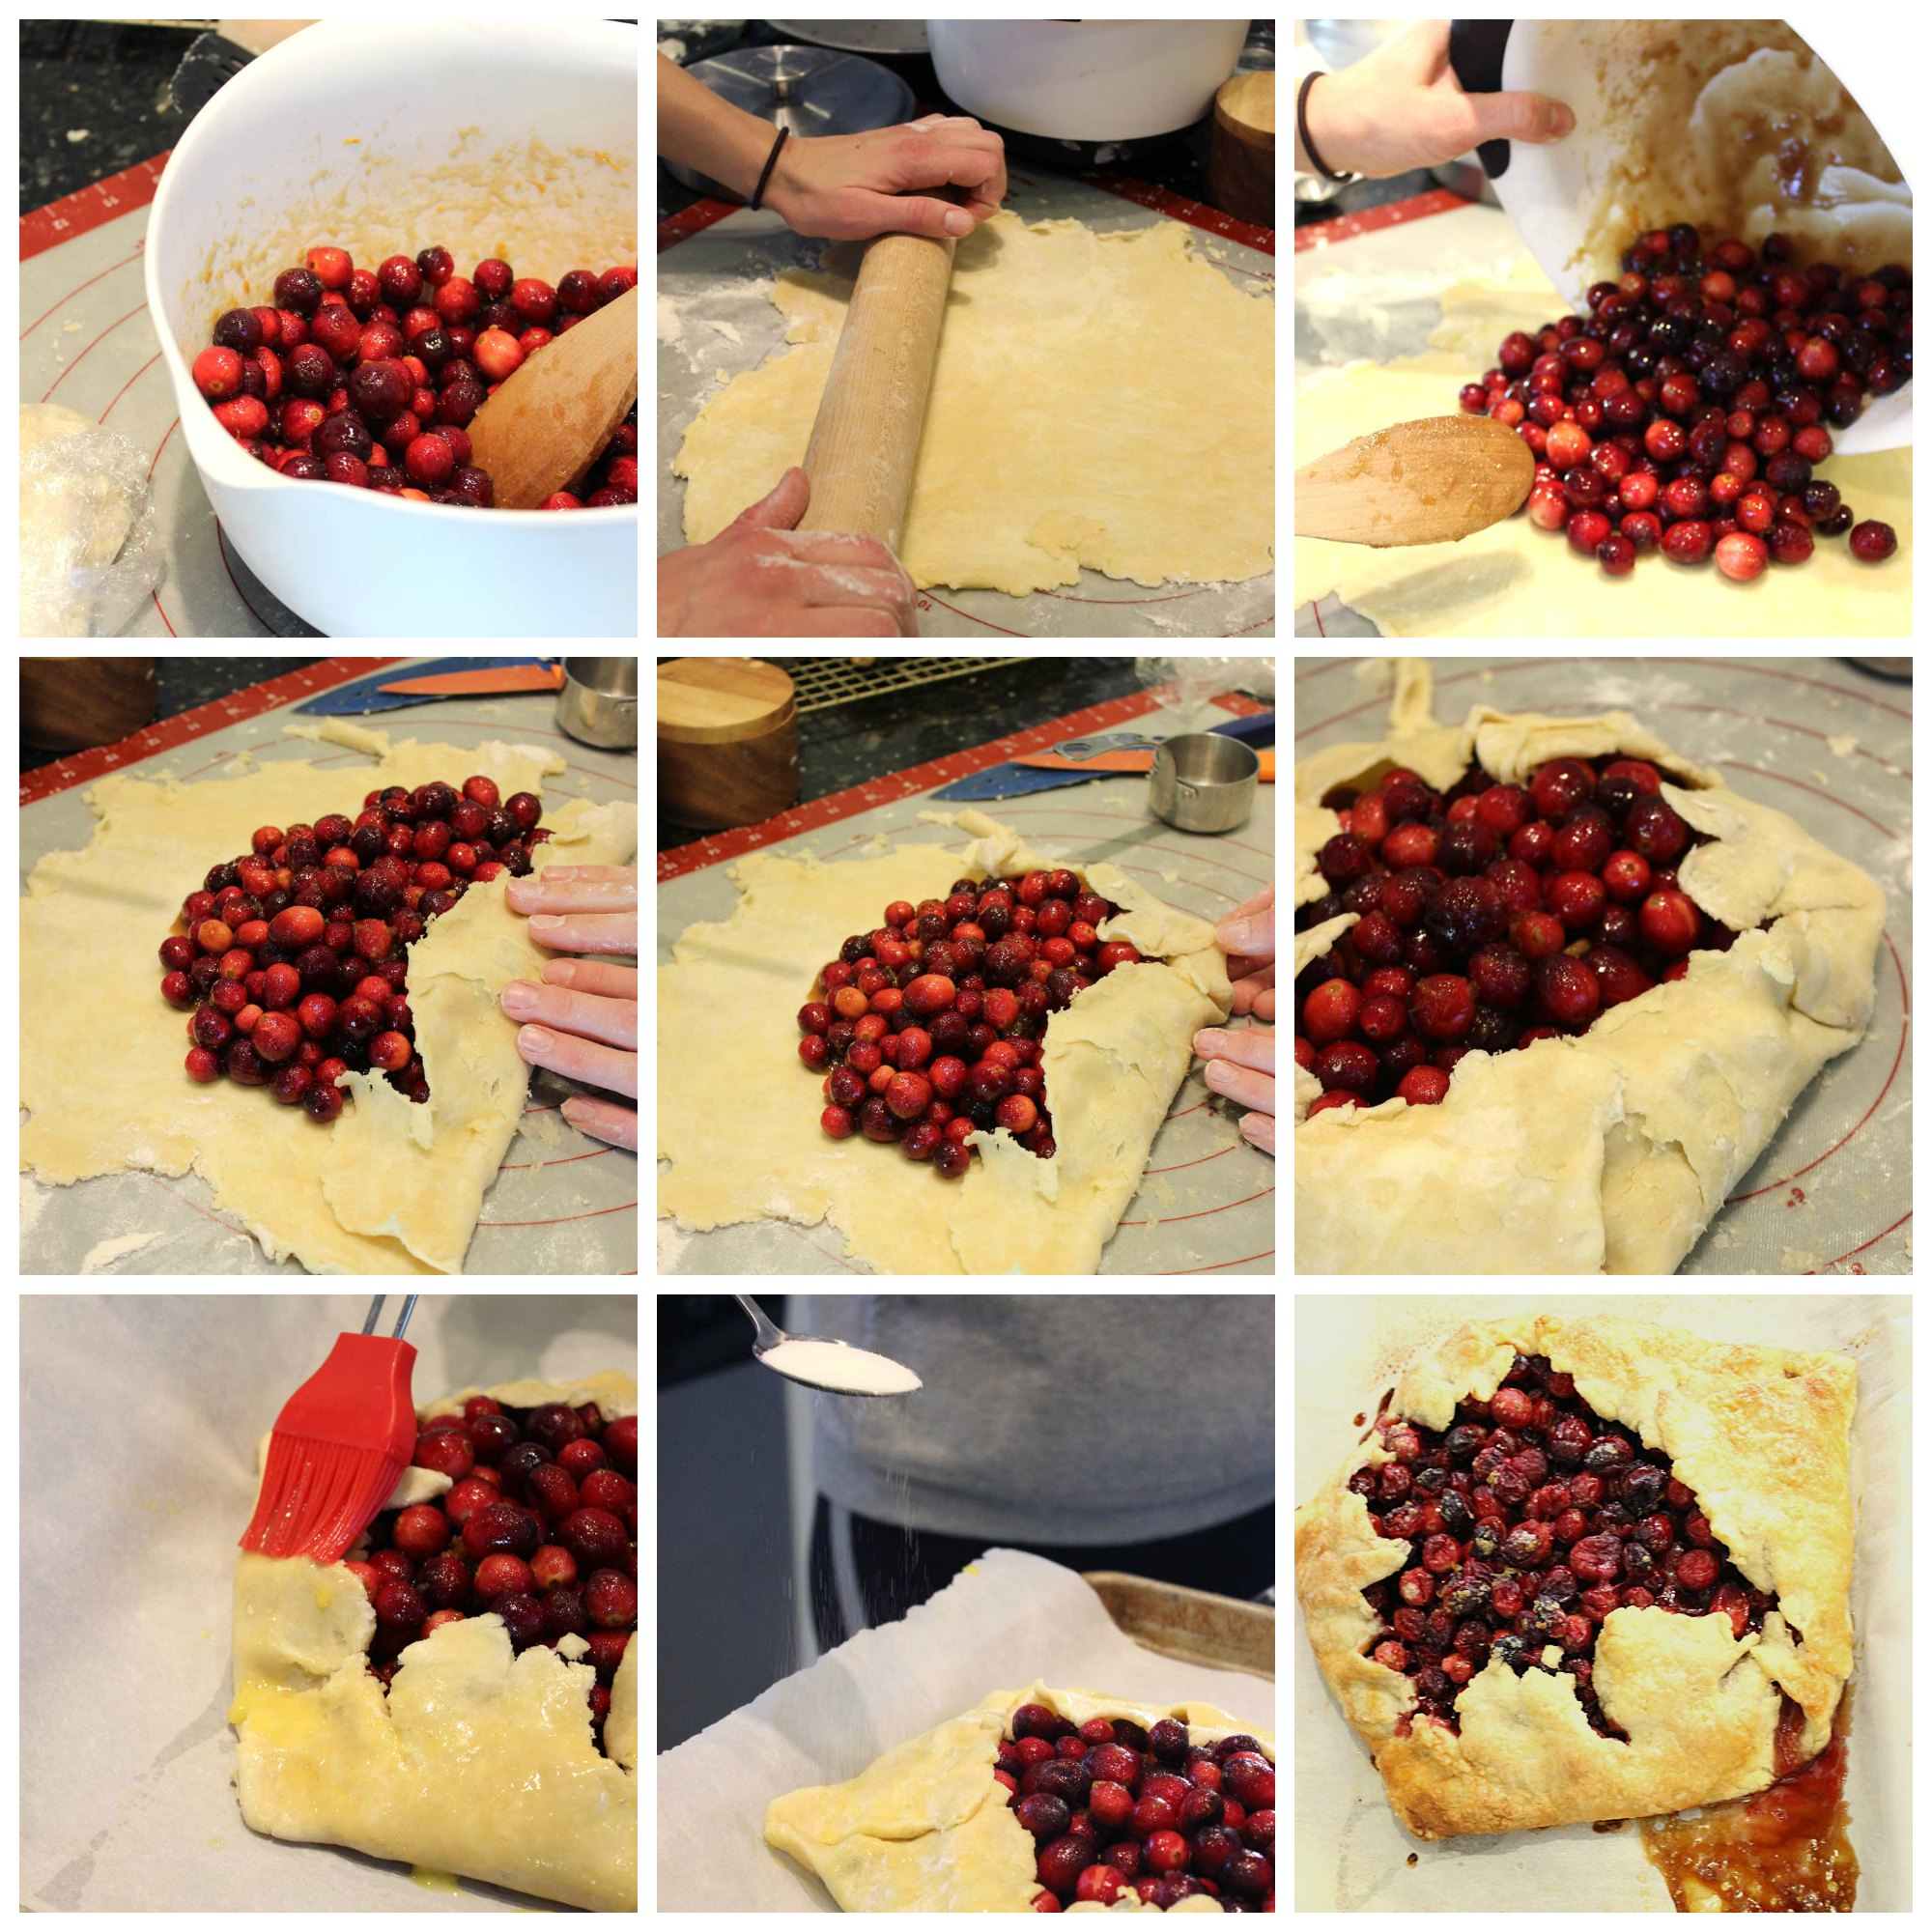 Cranberry Orange Ginger Galette Recipe - Step by Step tutorial!